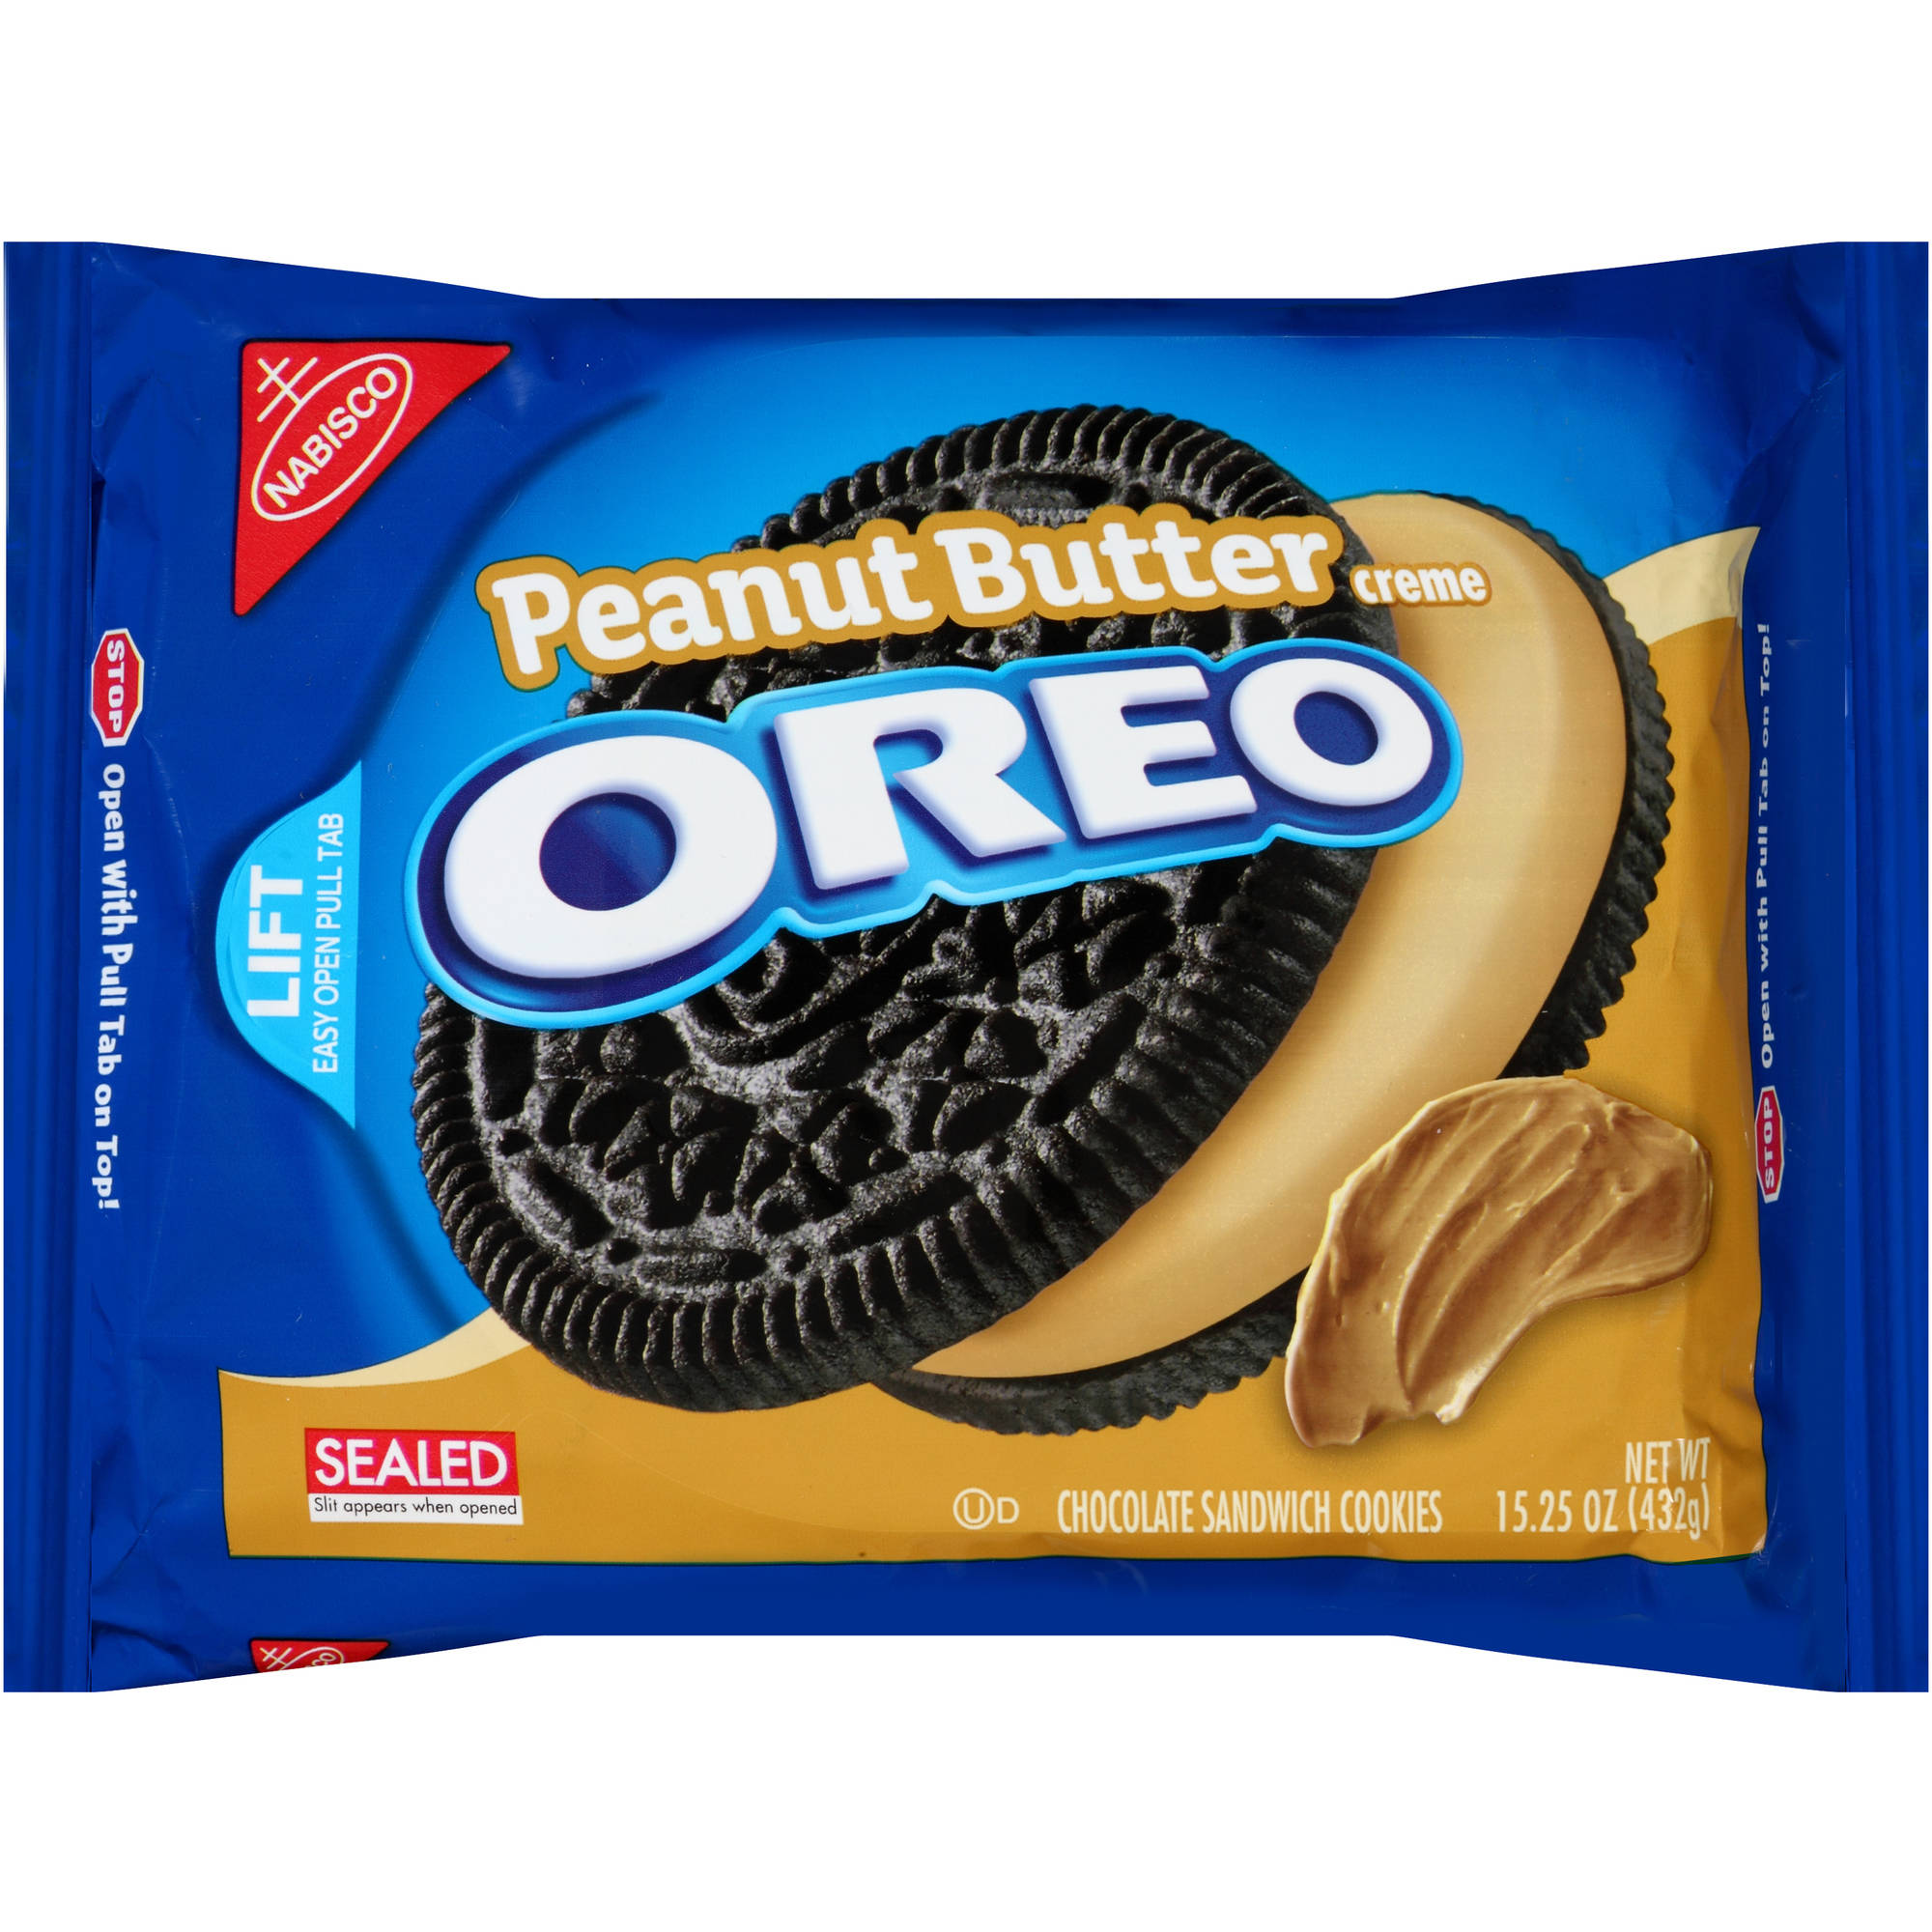 Nabisco Oreo Peanut Butter Creme Chocolate Sandwich Cookies, 15.25 oz